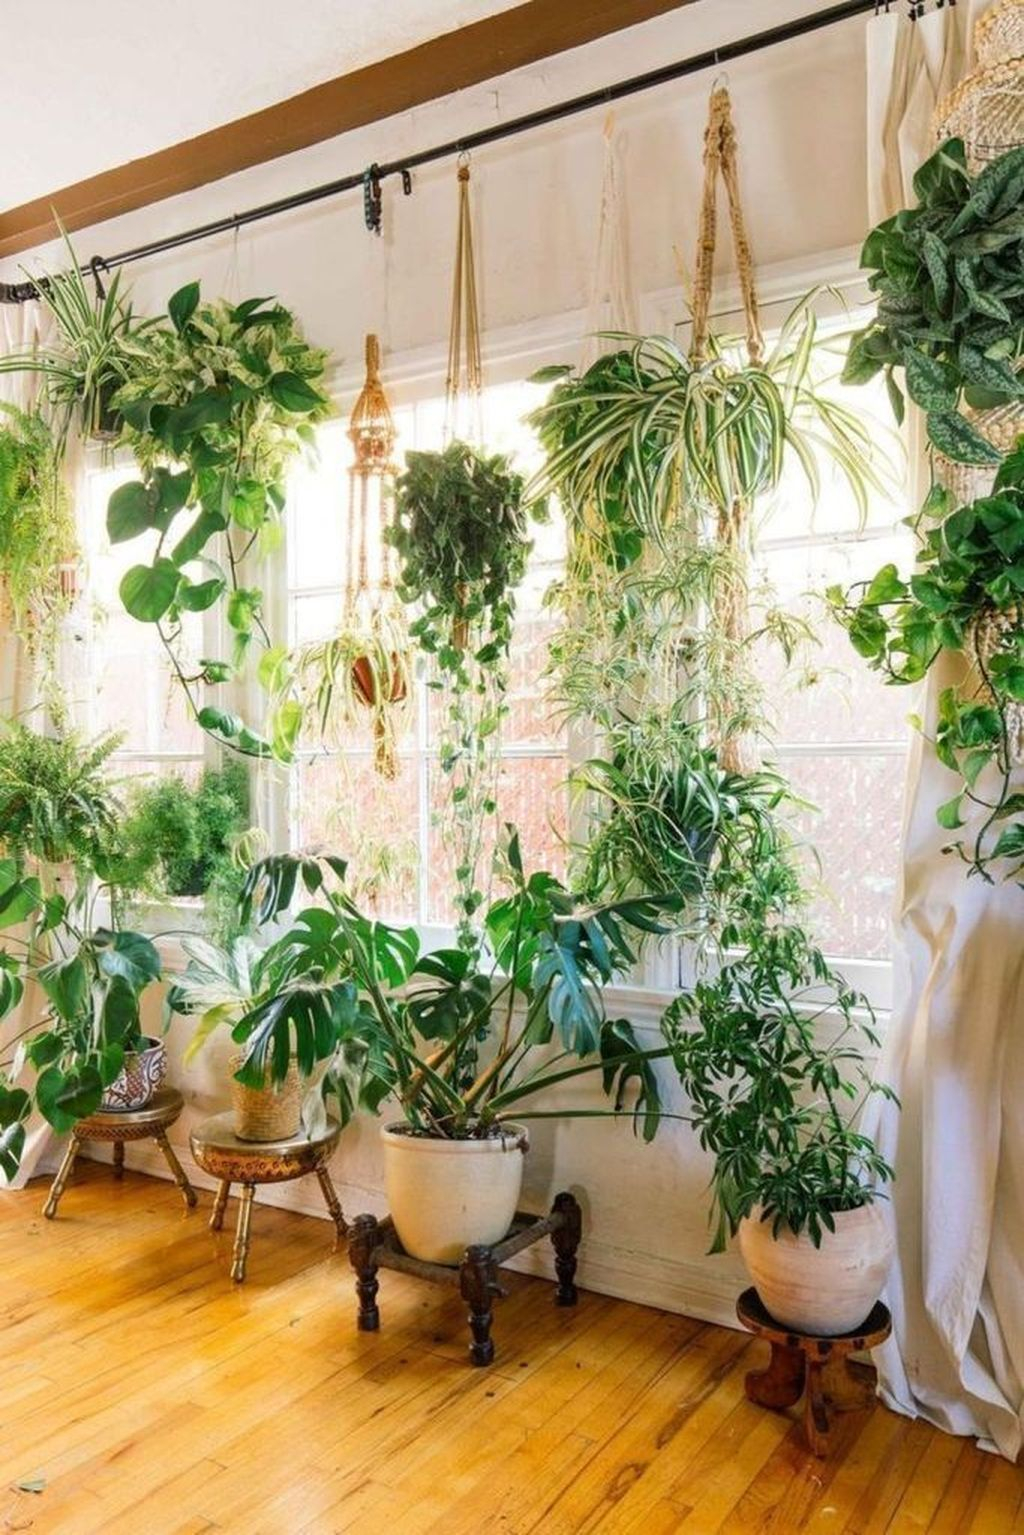 Favorite Home Patio Design Ideas With Best Hanging Plants 16